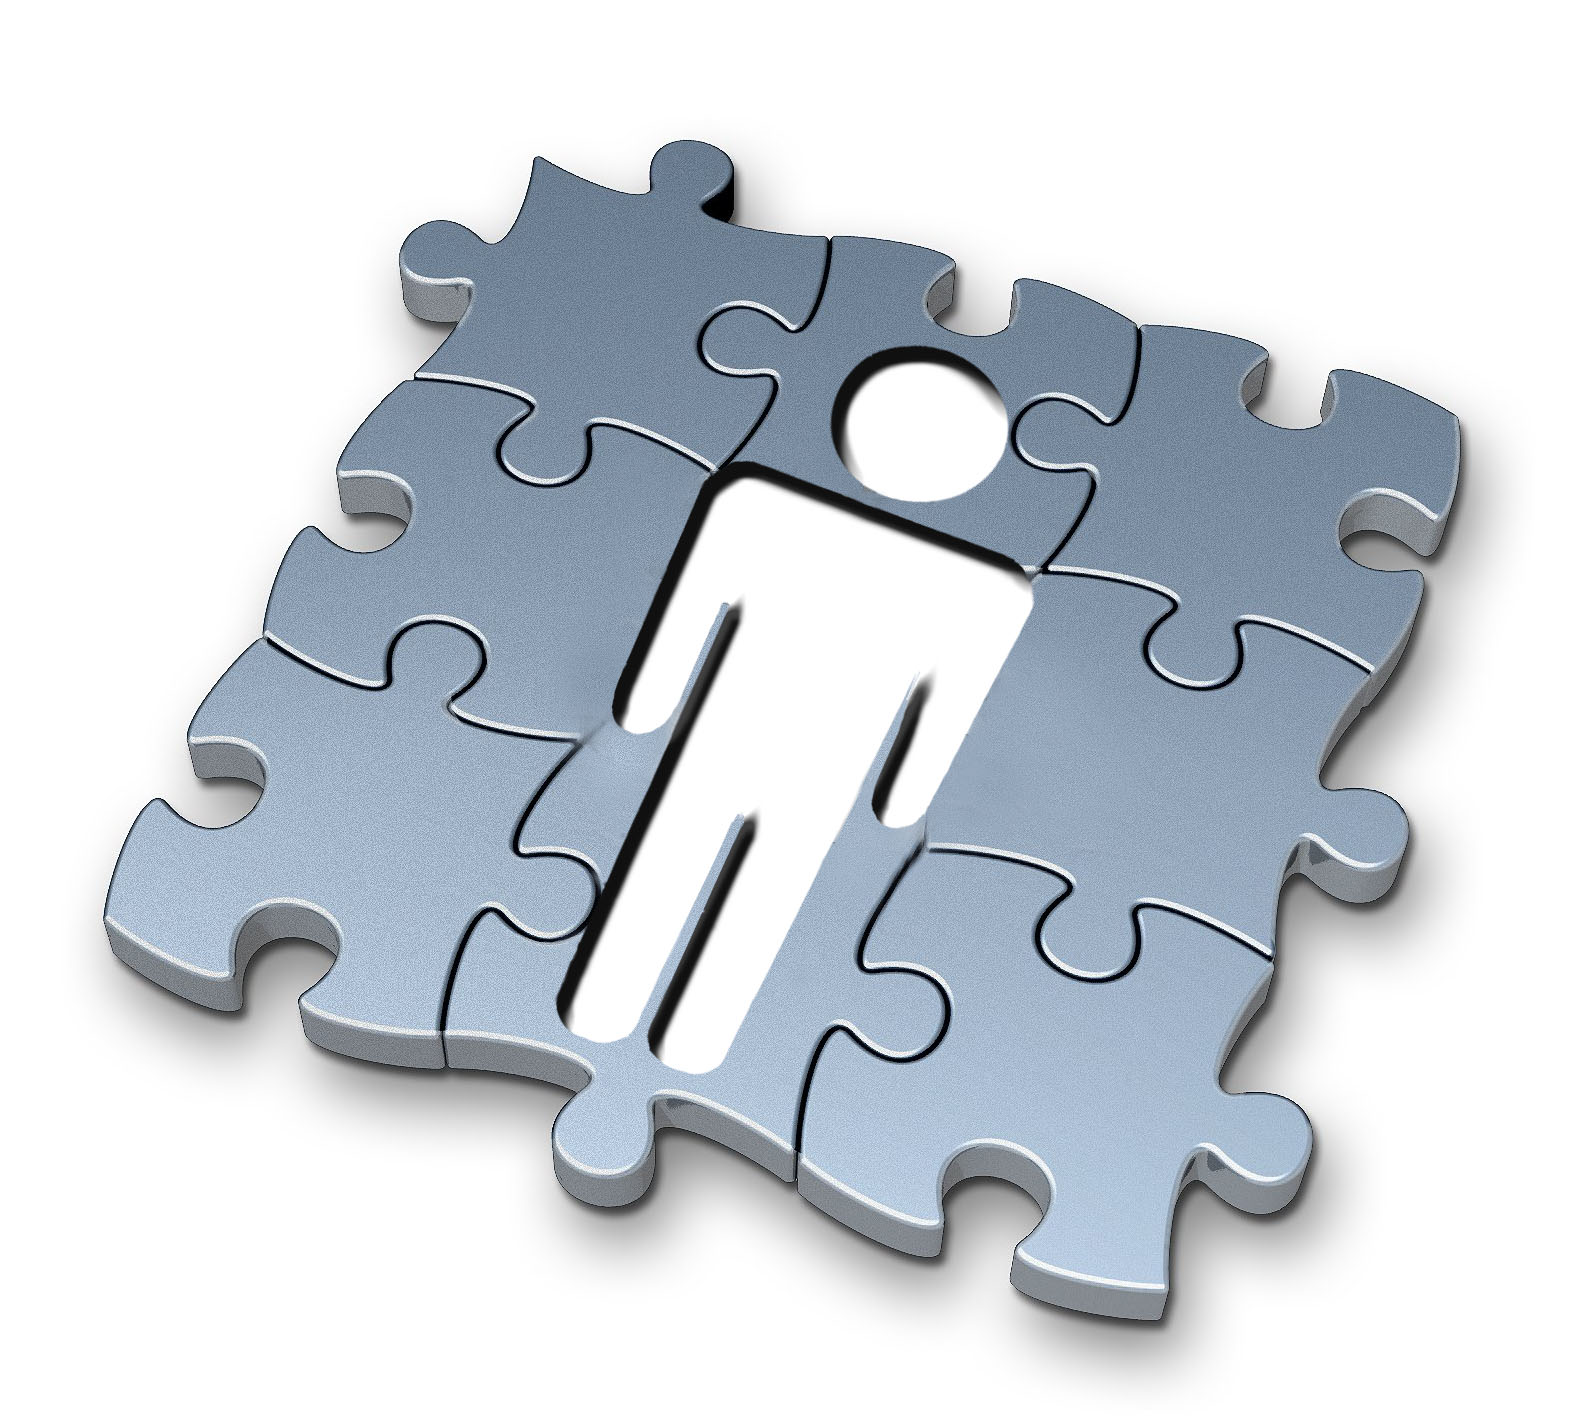 The missing piece tampa fl - Looking For A Career Opportunity